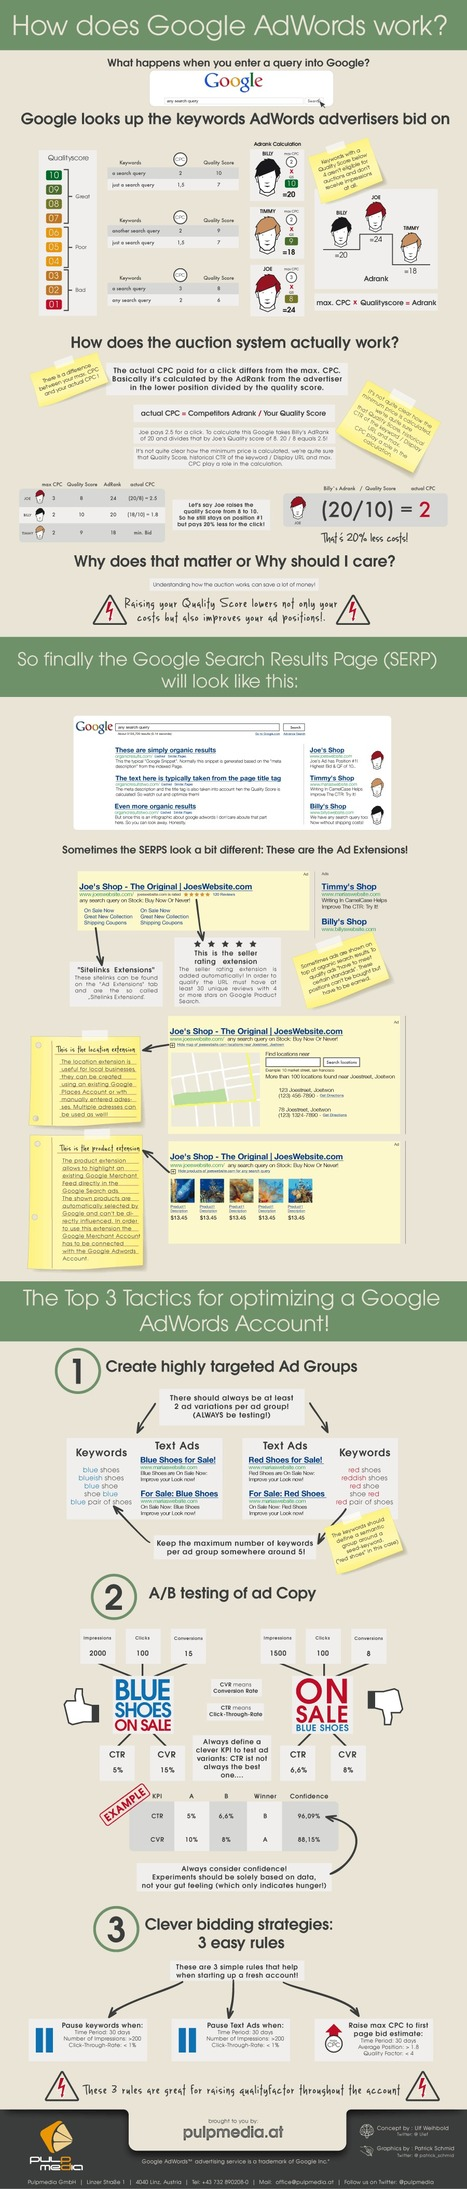 How Does Google AdWords Work [Infographic] | Time to Learn | Scoop.it